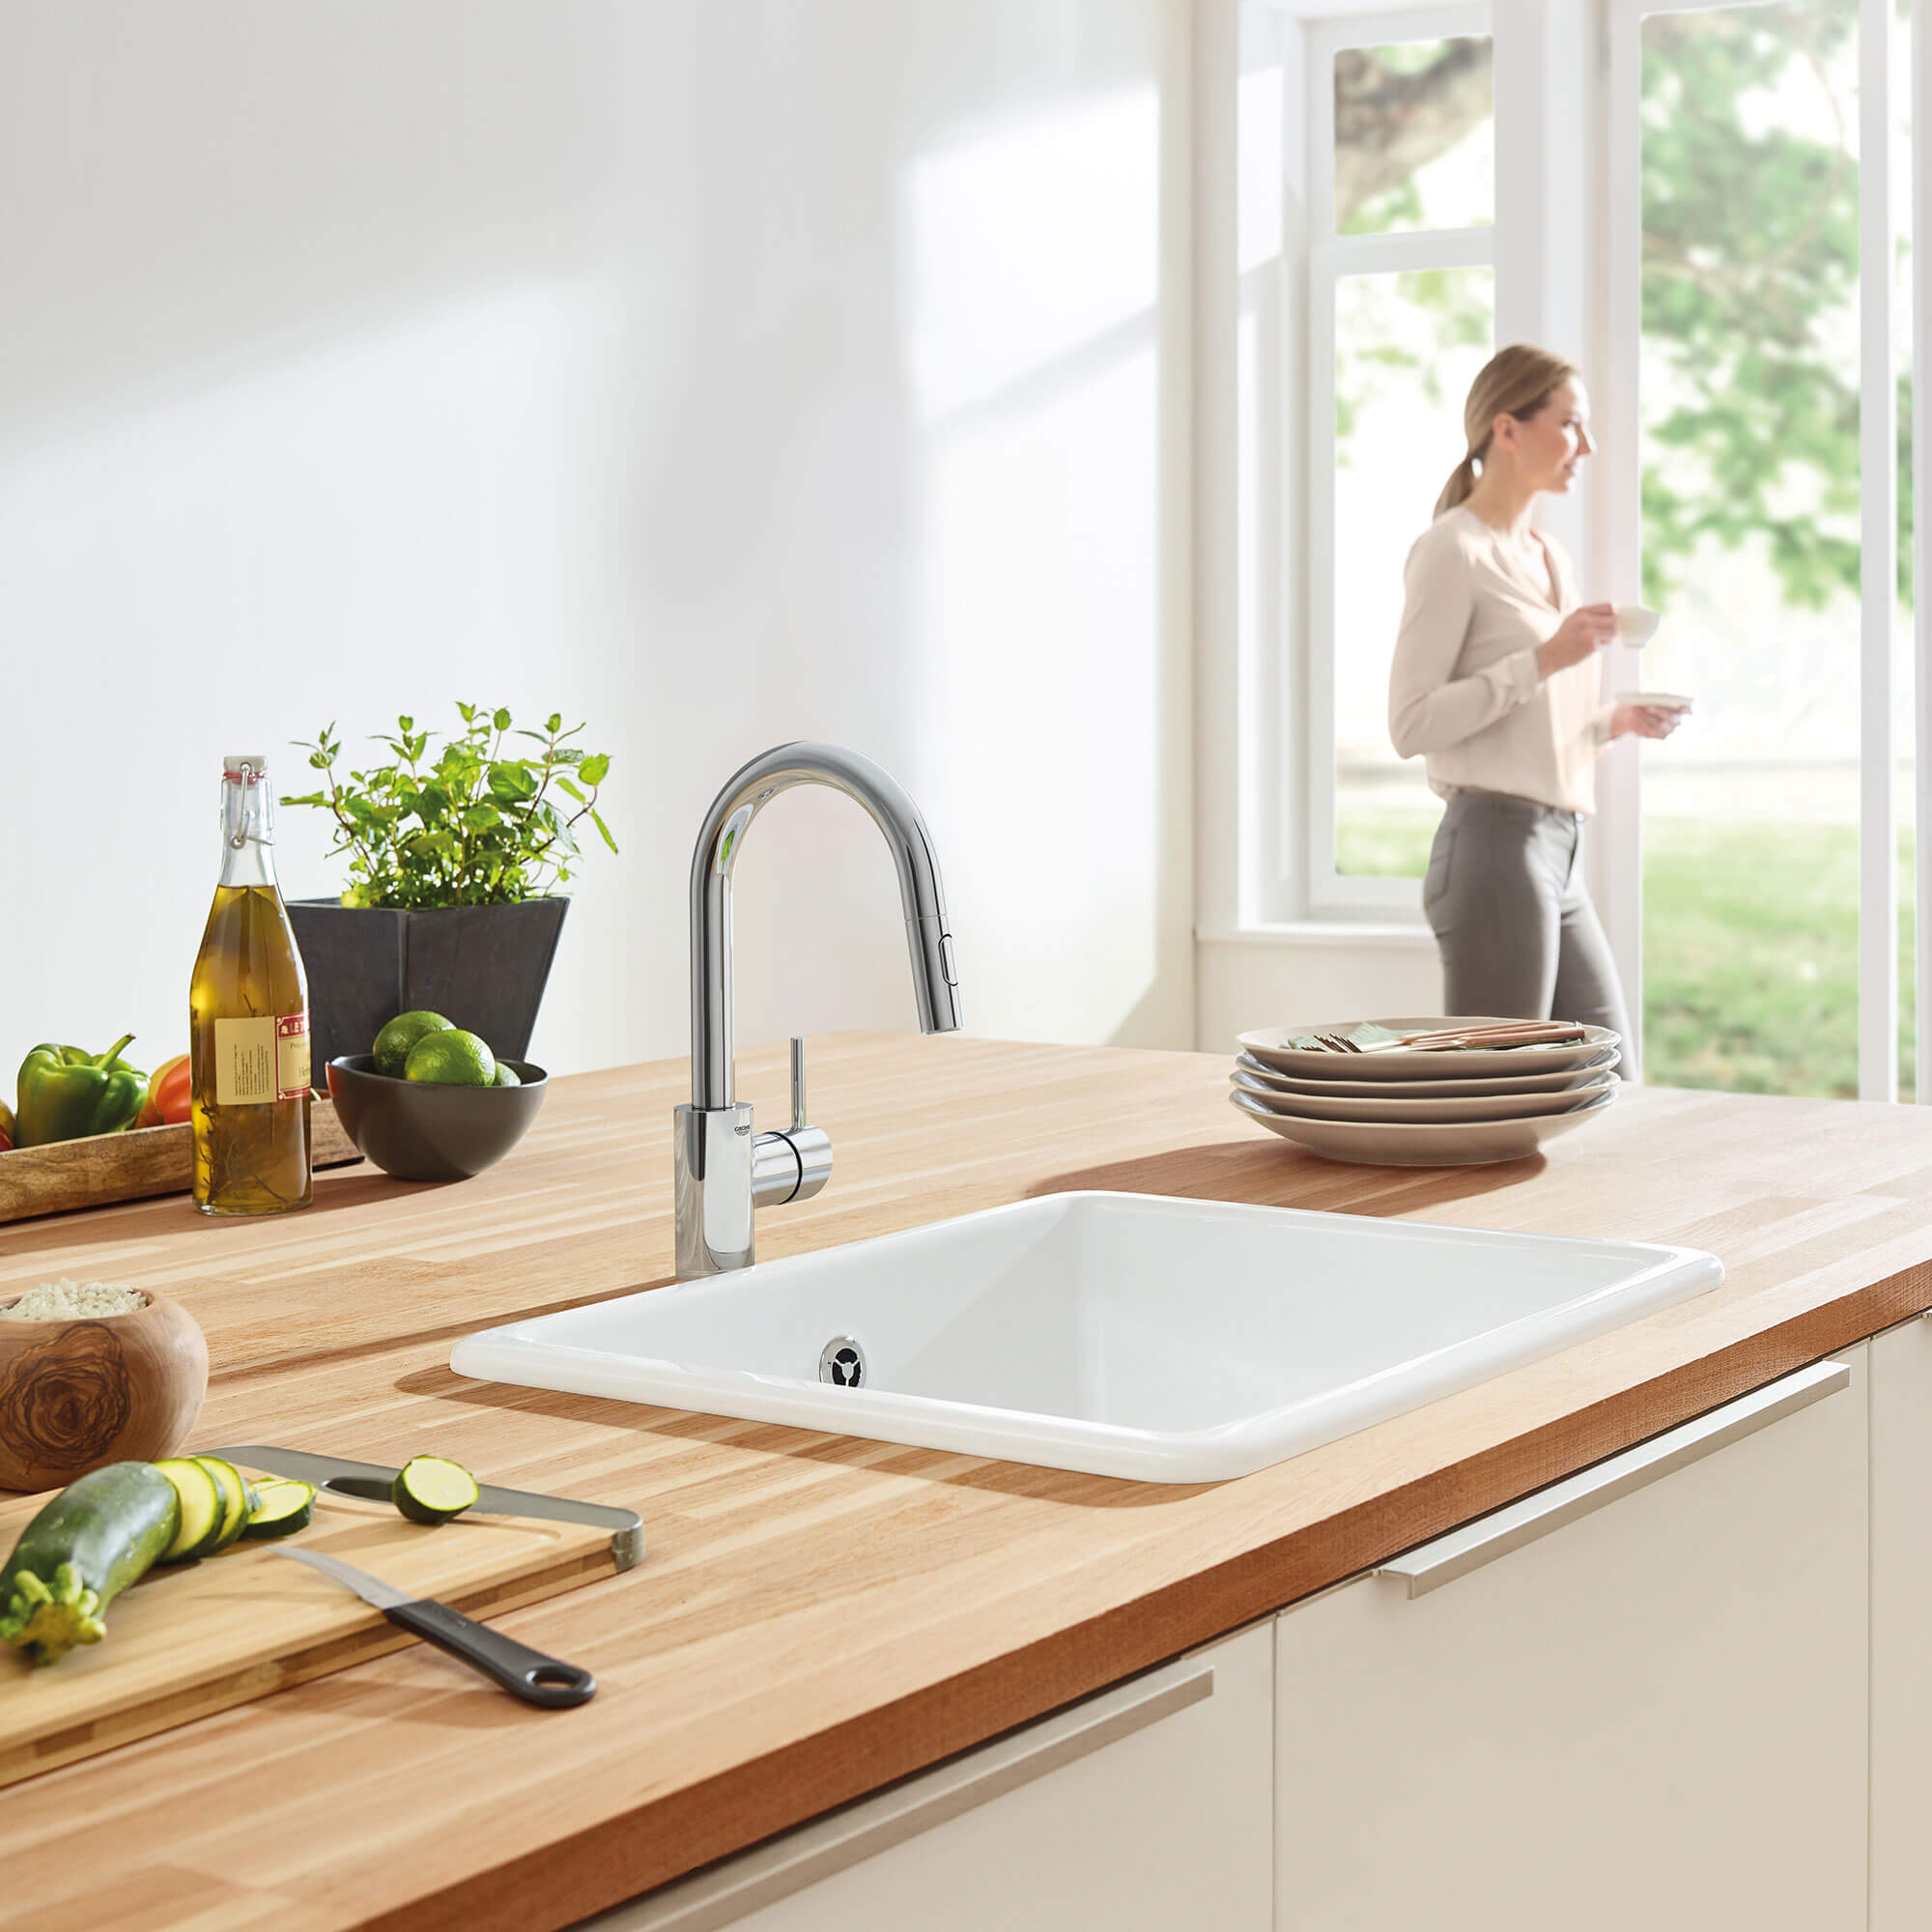 Concetta Kitchen Faucet in Kitchen with Food and a Woman Standing Near a Door